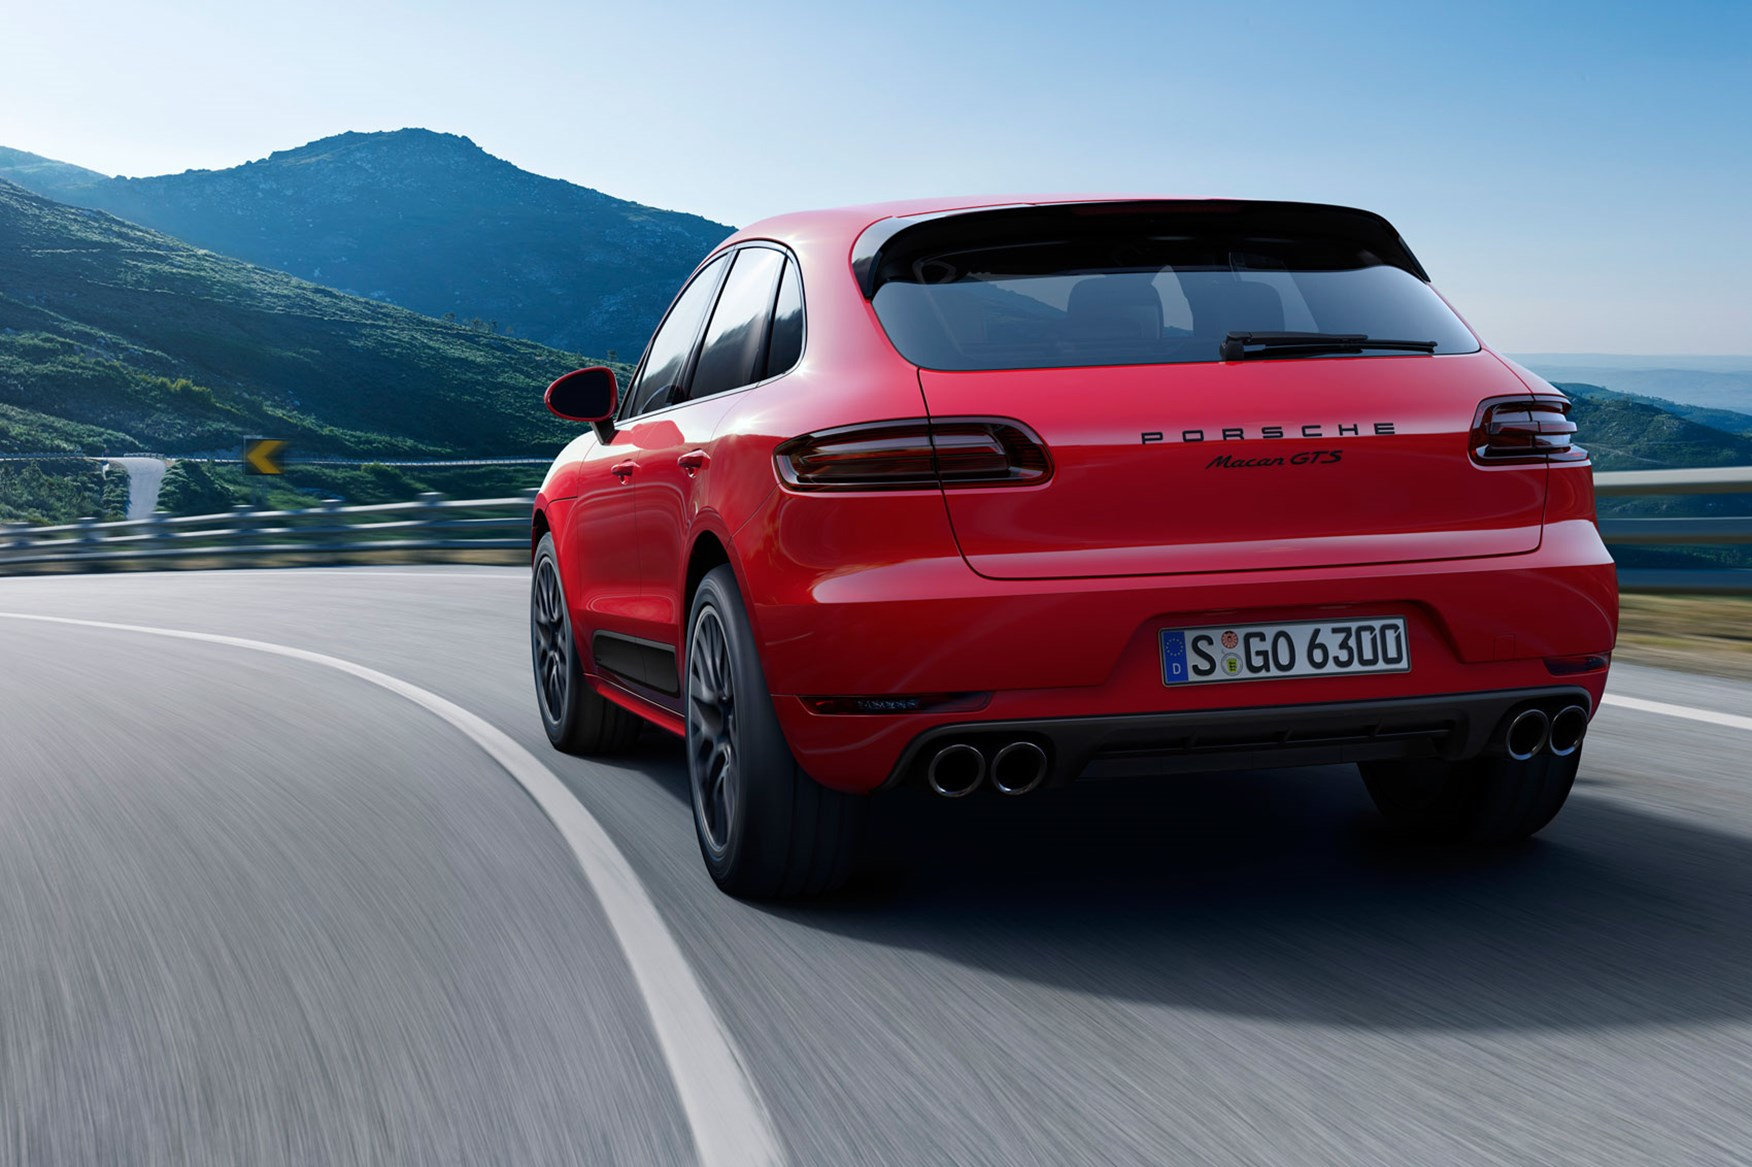 Porsche Macan Gts 2015 Revealed Could This Be The Best Handling